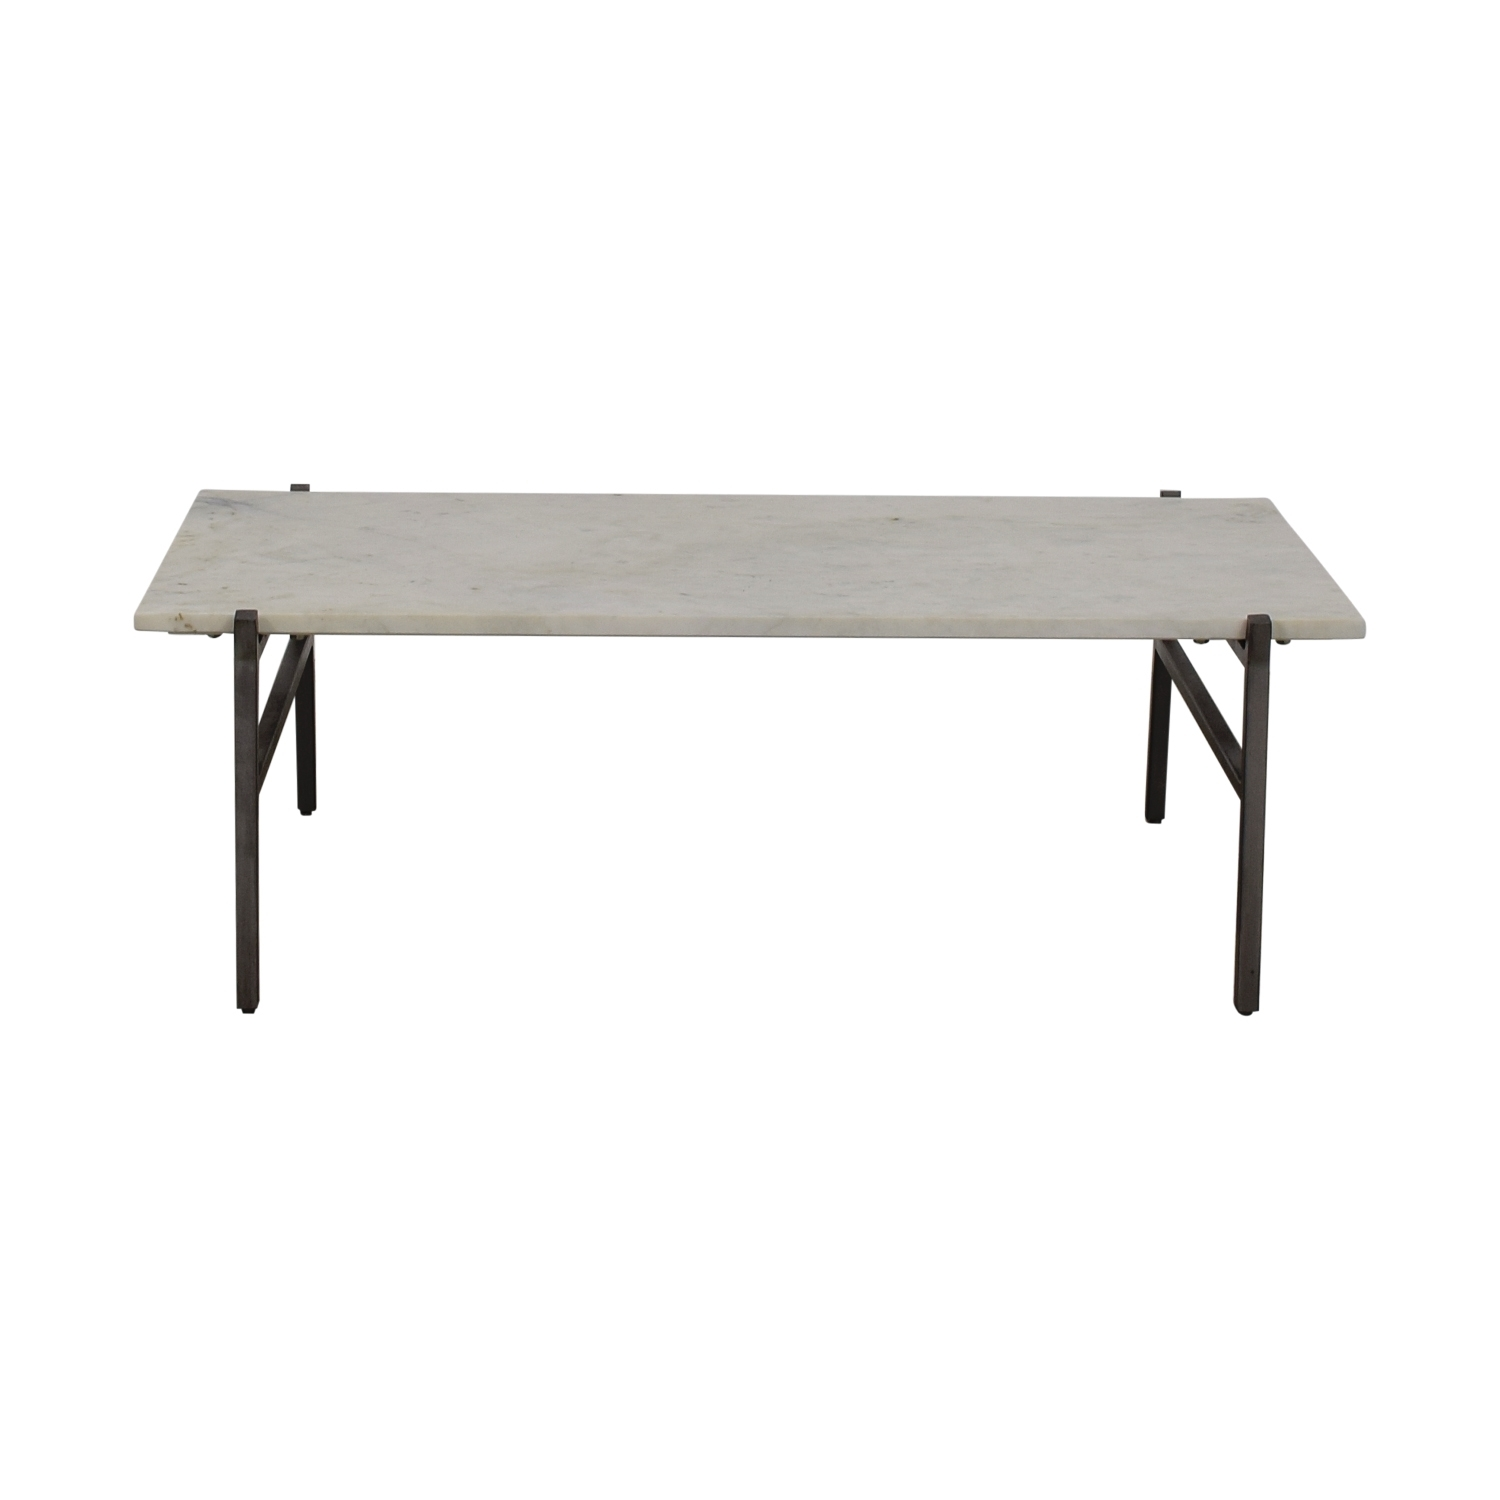 24% Off   Cb2 Cb2 Slab Small Marble Coffee Table With Antiqued With Slab Small Marble Coffee Tables With Antiqued Silver Base (Photo 1 of 30)